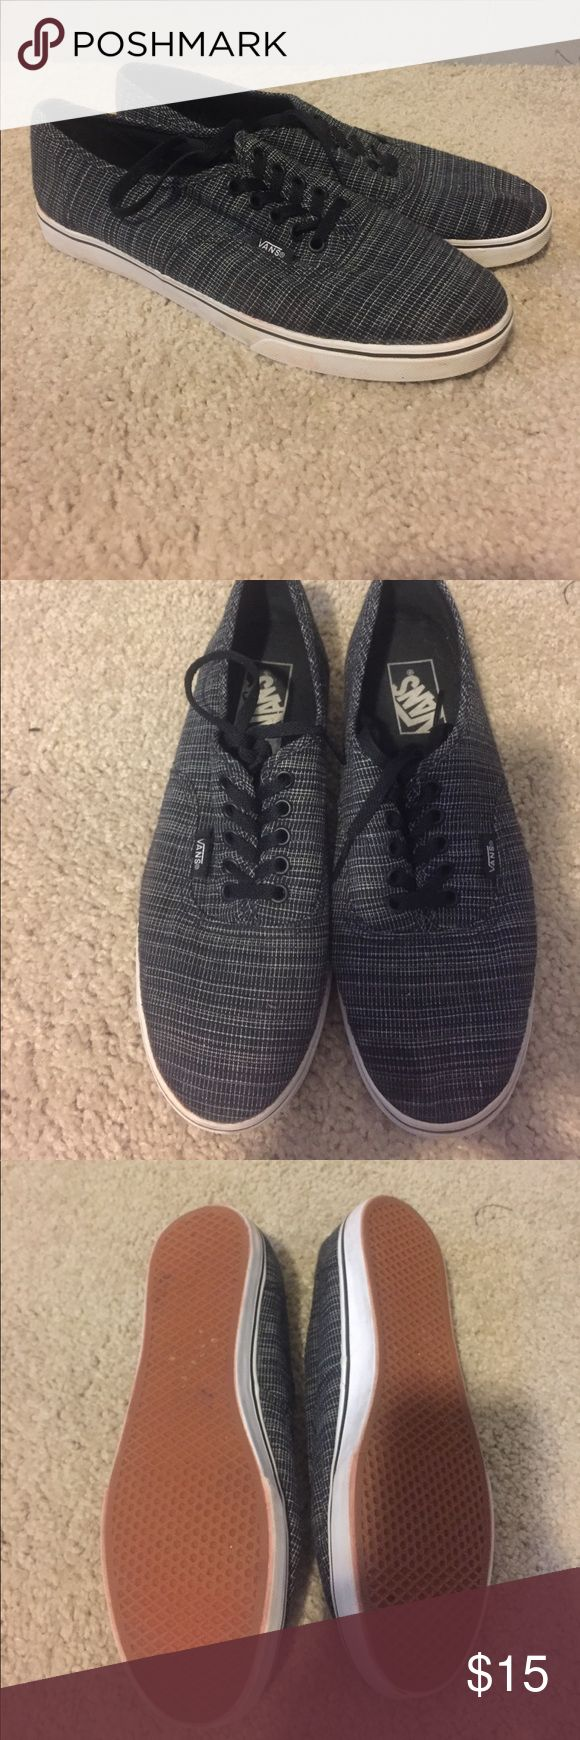 Vans, worn once Worn once Vans, the design is like a denim blue and white colors. The sole has a bit of red coloring from the red/orange gravel I have at my house. I tried to take off as much as possible after I noticed. True 8.5 Vans Shoes Sneakers